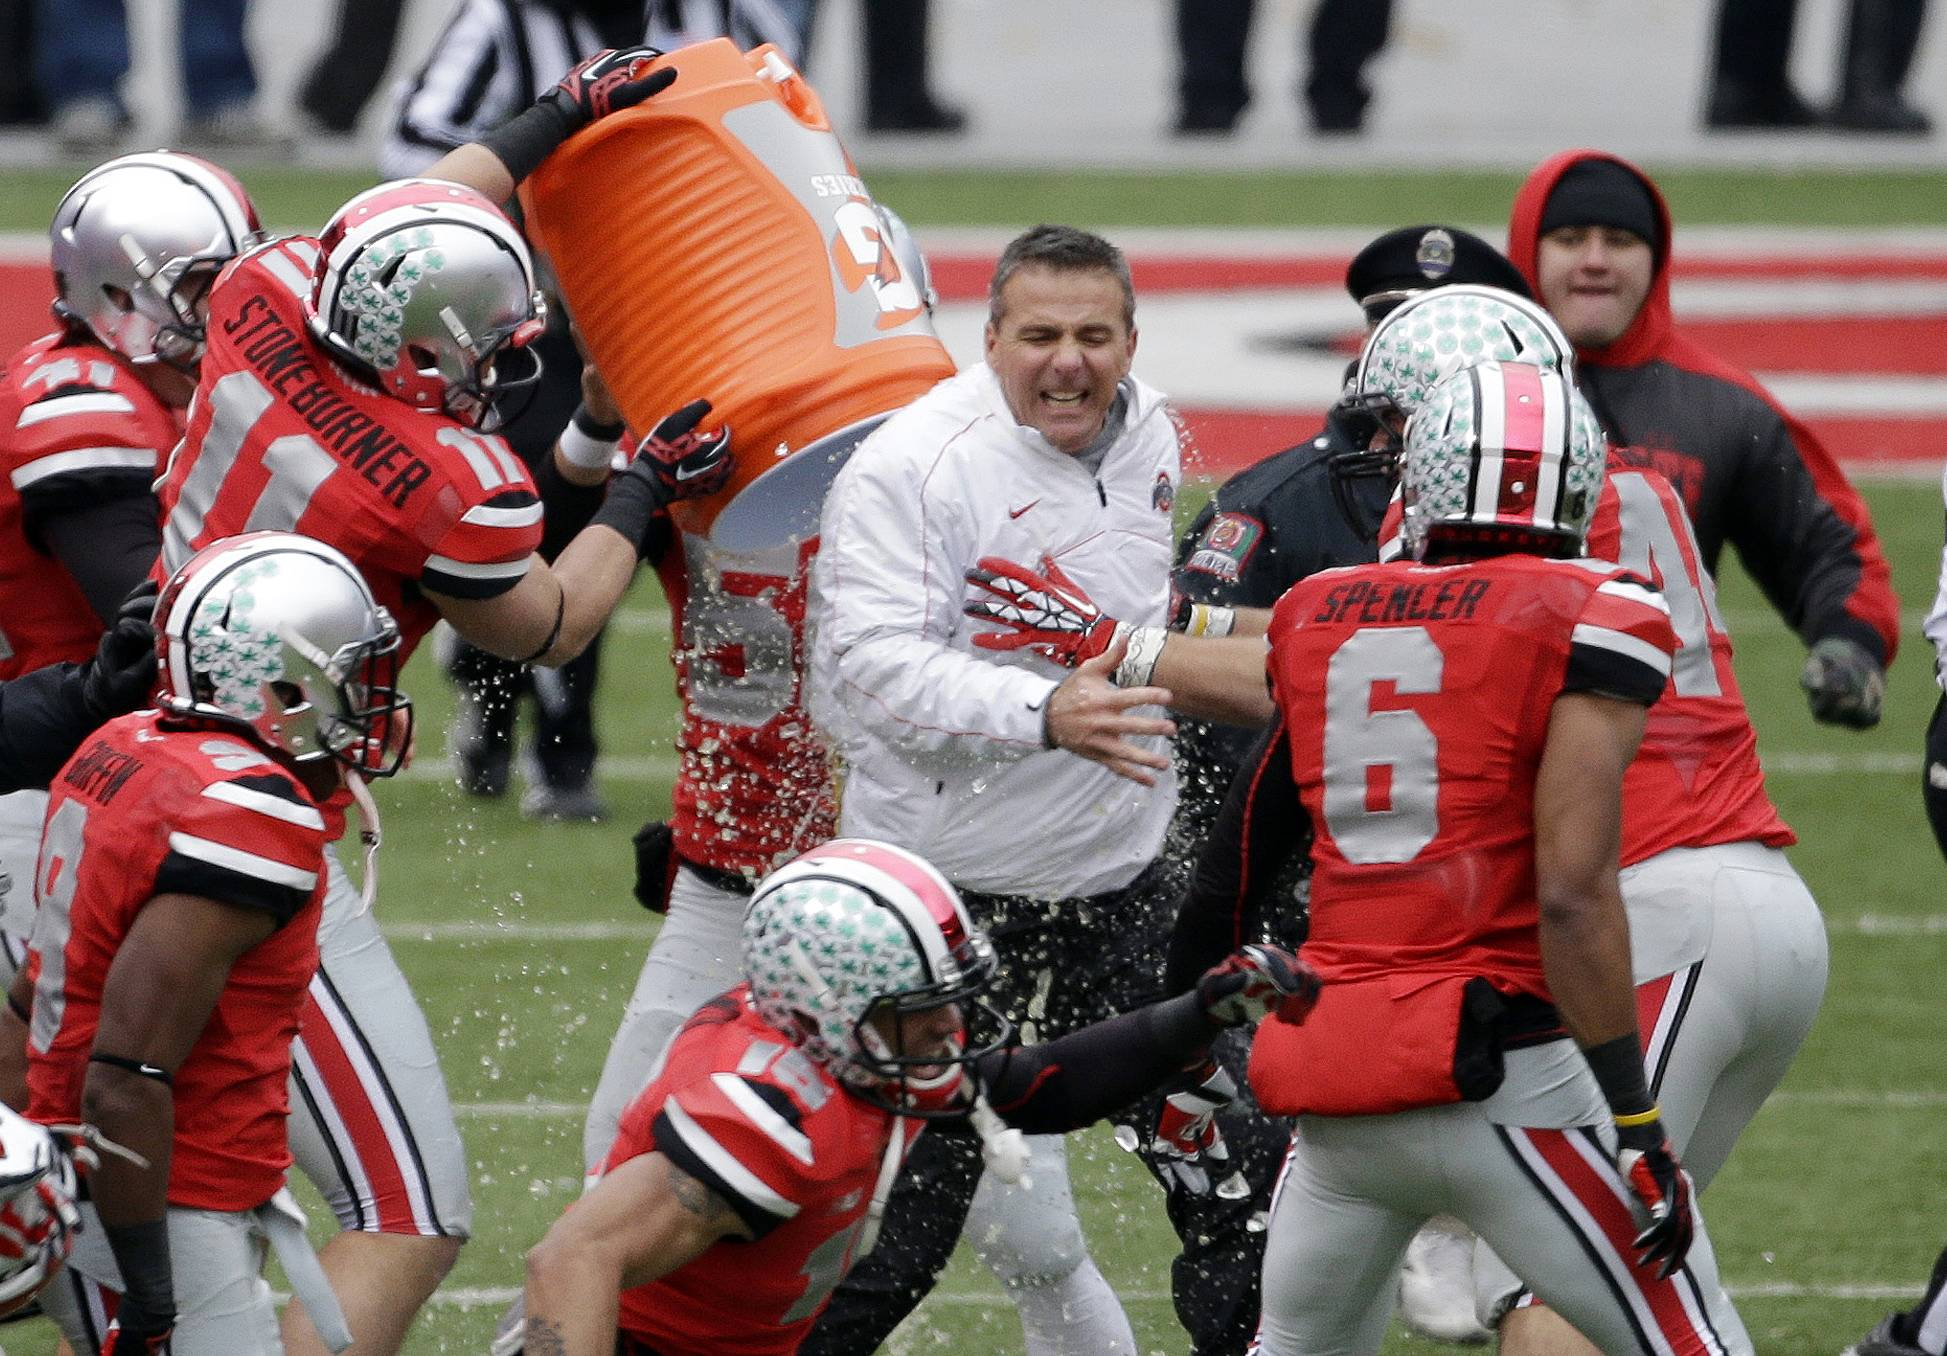 Ohio State head coach Urban Meyer gets doused by senior wide receiver Jake Stoneburner after a win over Michigan in Columbus, Ohio. For the second year in a row, not only do the Buckeyes have the Wolverines to deal with, but also the Big Ten title game looming a week later.